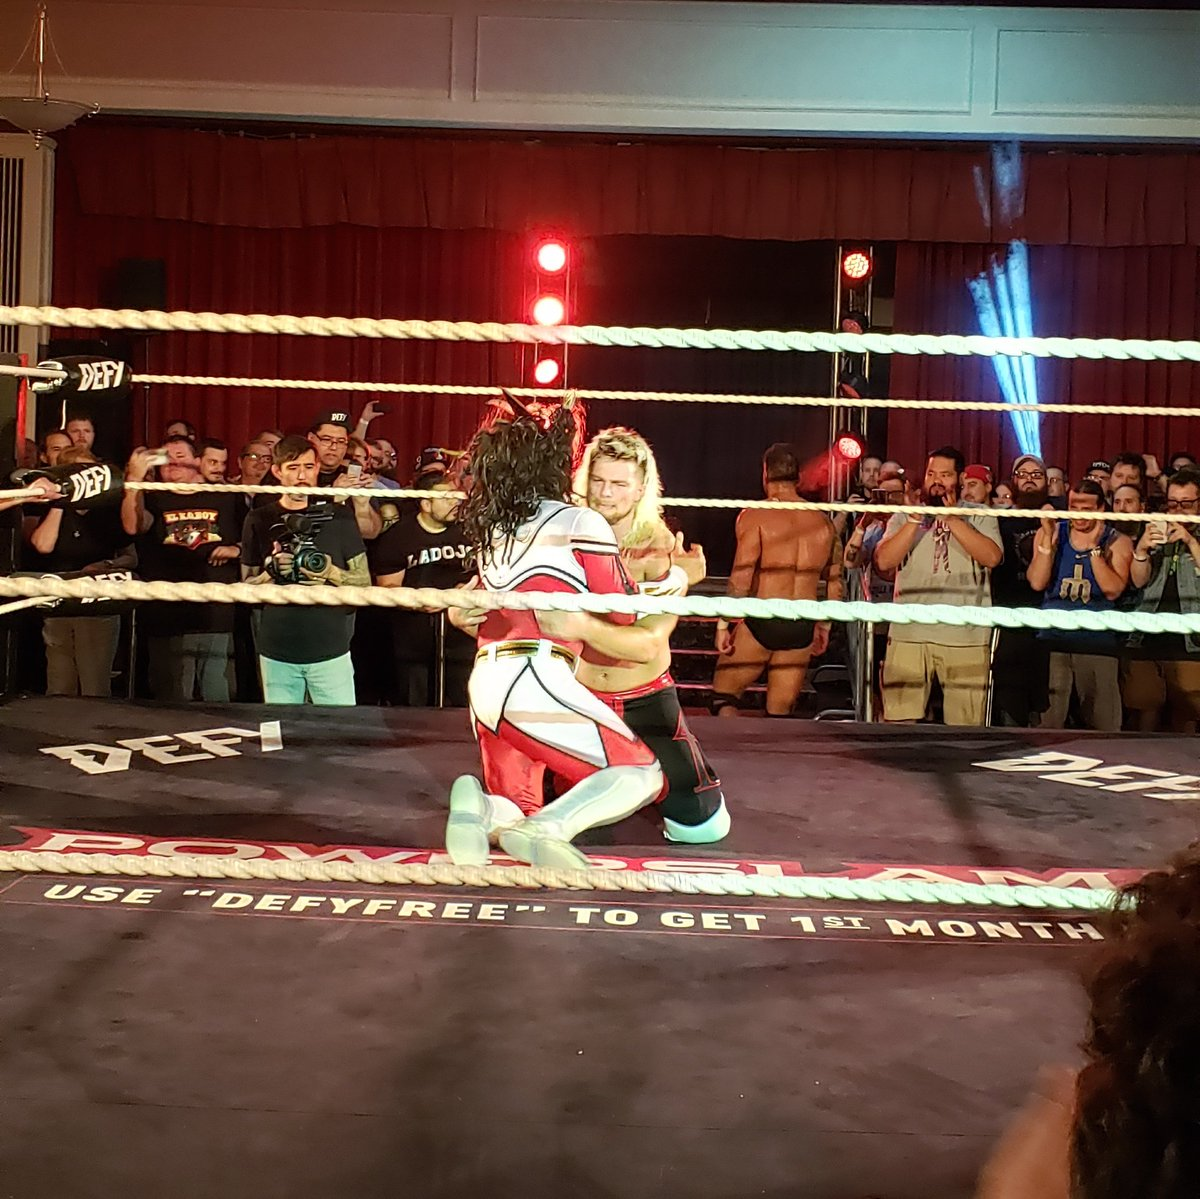 A picture's worth a thousand words.  @Liger_NJPW and @FlyinBrianJr.  @defyNW  #DefyanceForever<br>http://pic.twitter.com/A9MOw98JM6